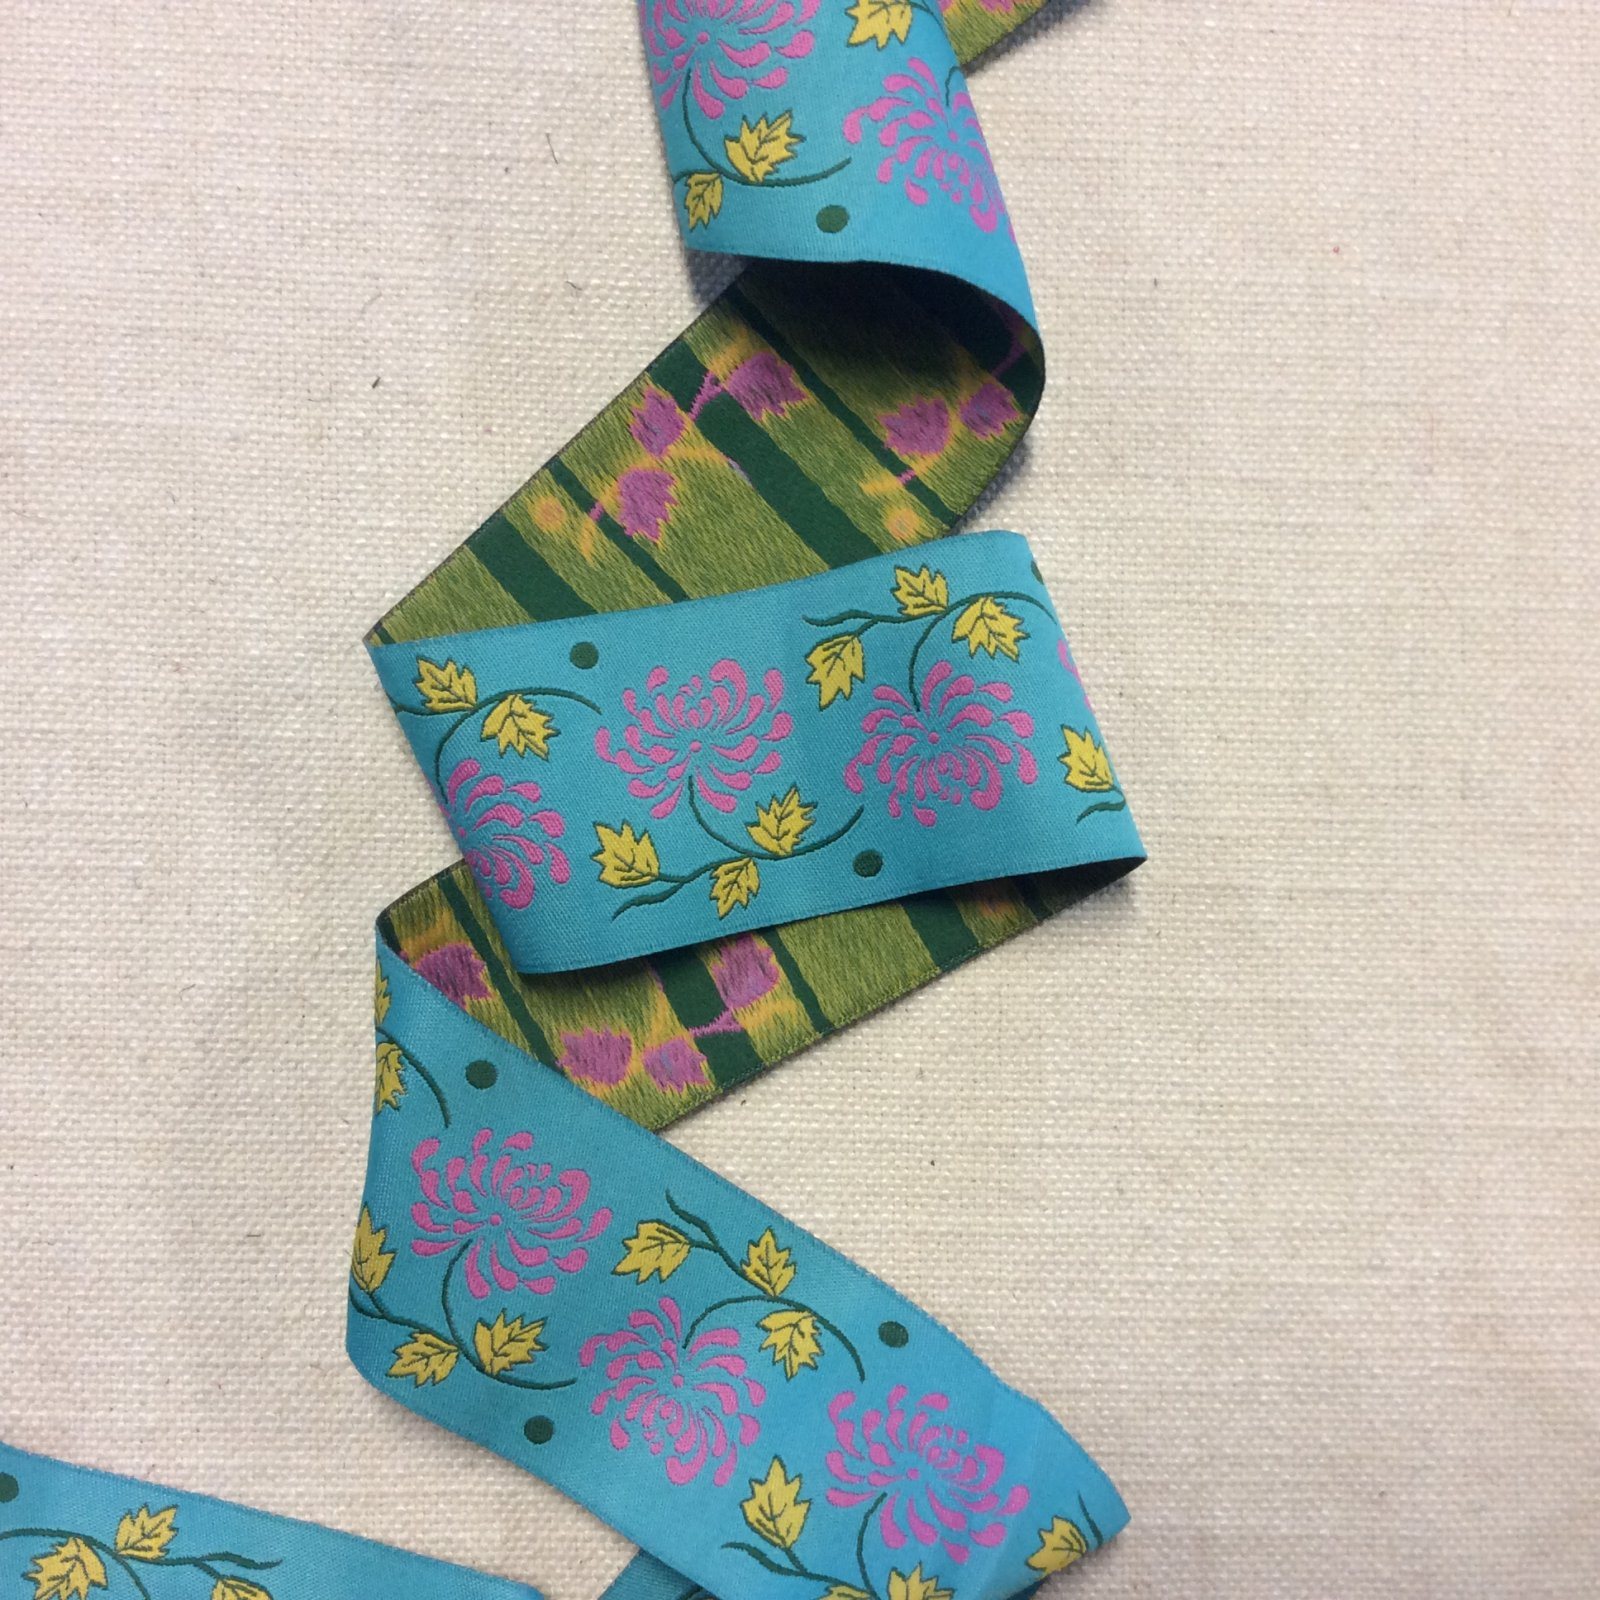 Woven Made in France Jacquard Turquoise Floral Flower Ribbon Trim RIB1311